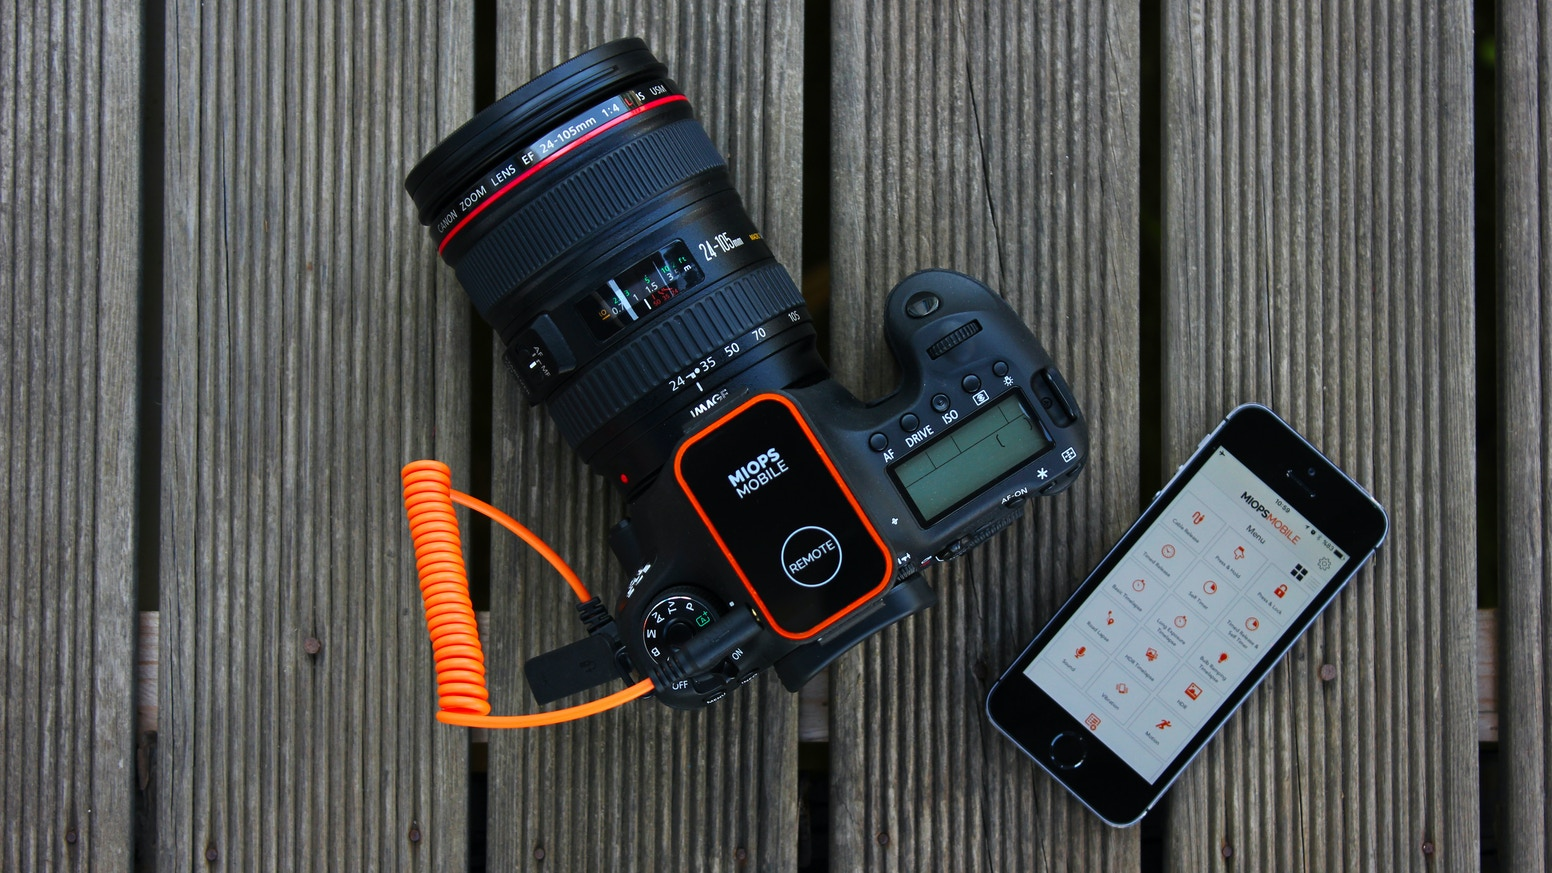 Leave the control of your camera to your smartphone with dozens of creative modes.  Timelapse, Motion, Sound, Vibration, HDR and more.